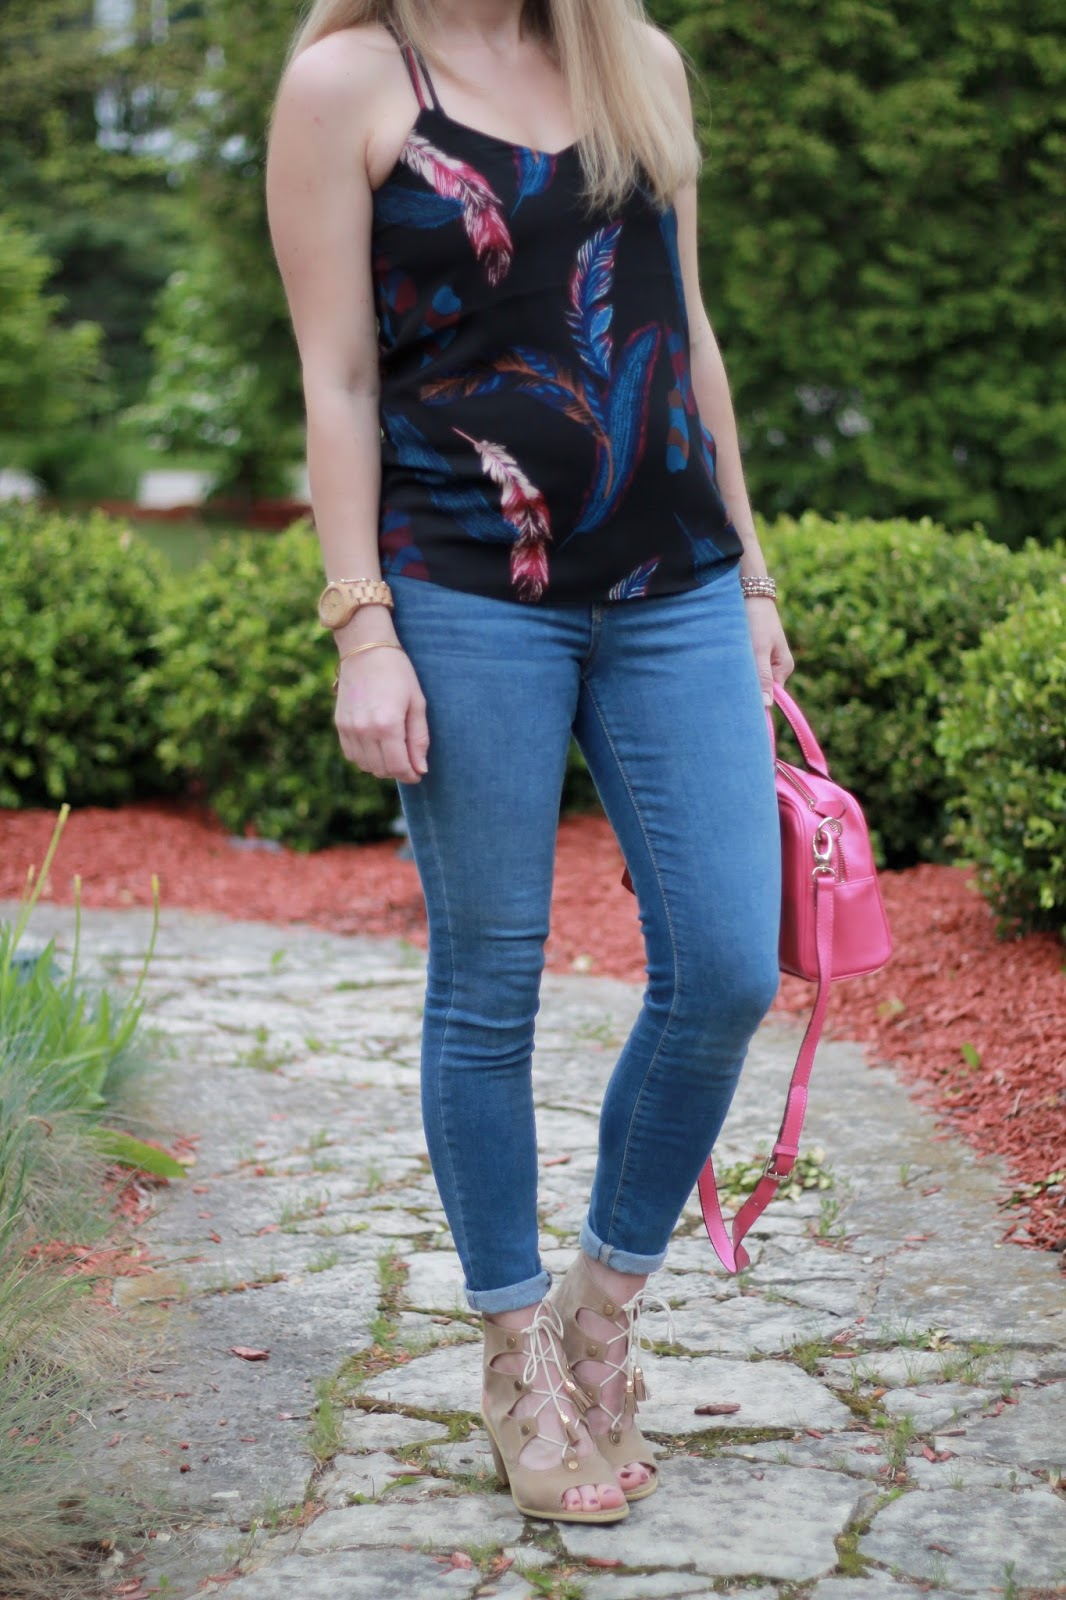 feather print barcelona cami, jeans, lace up sandals, bright pink bag